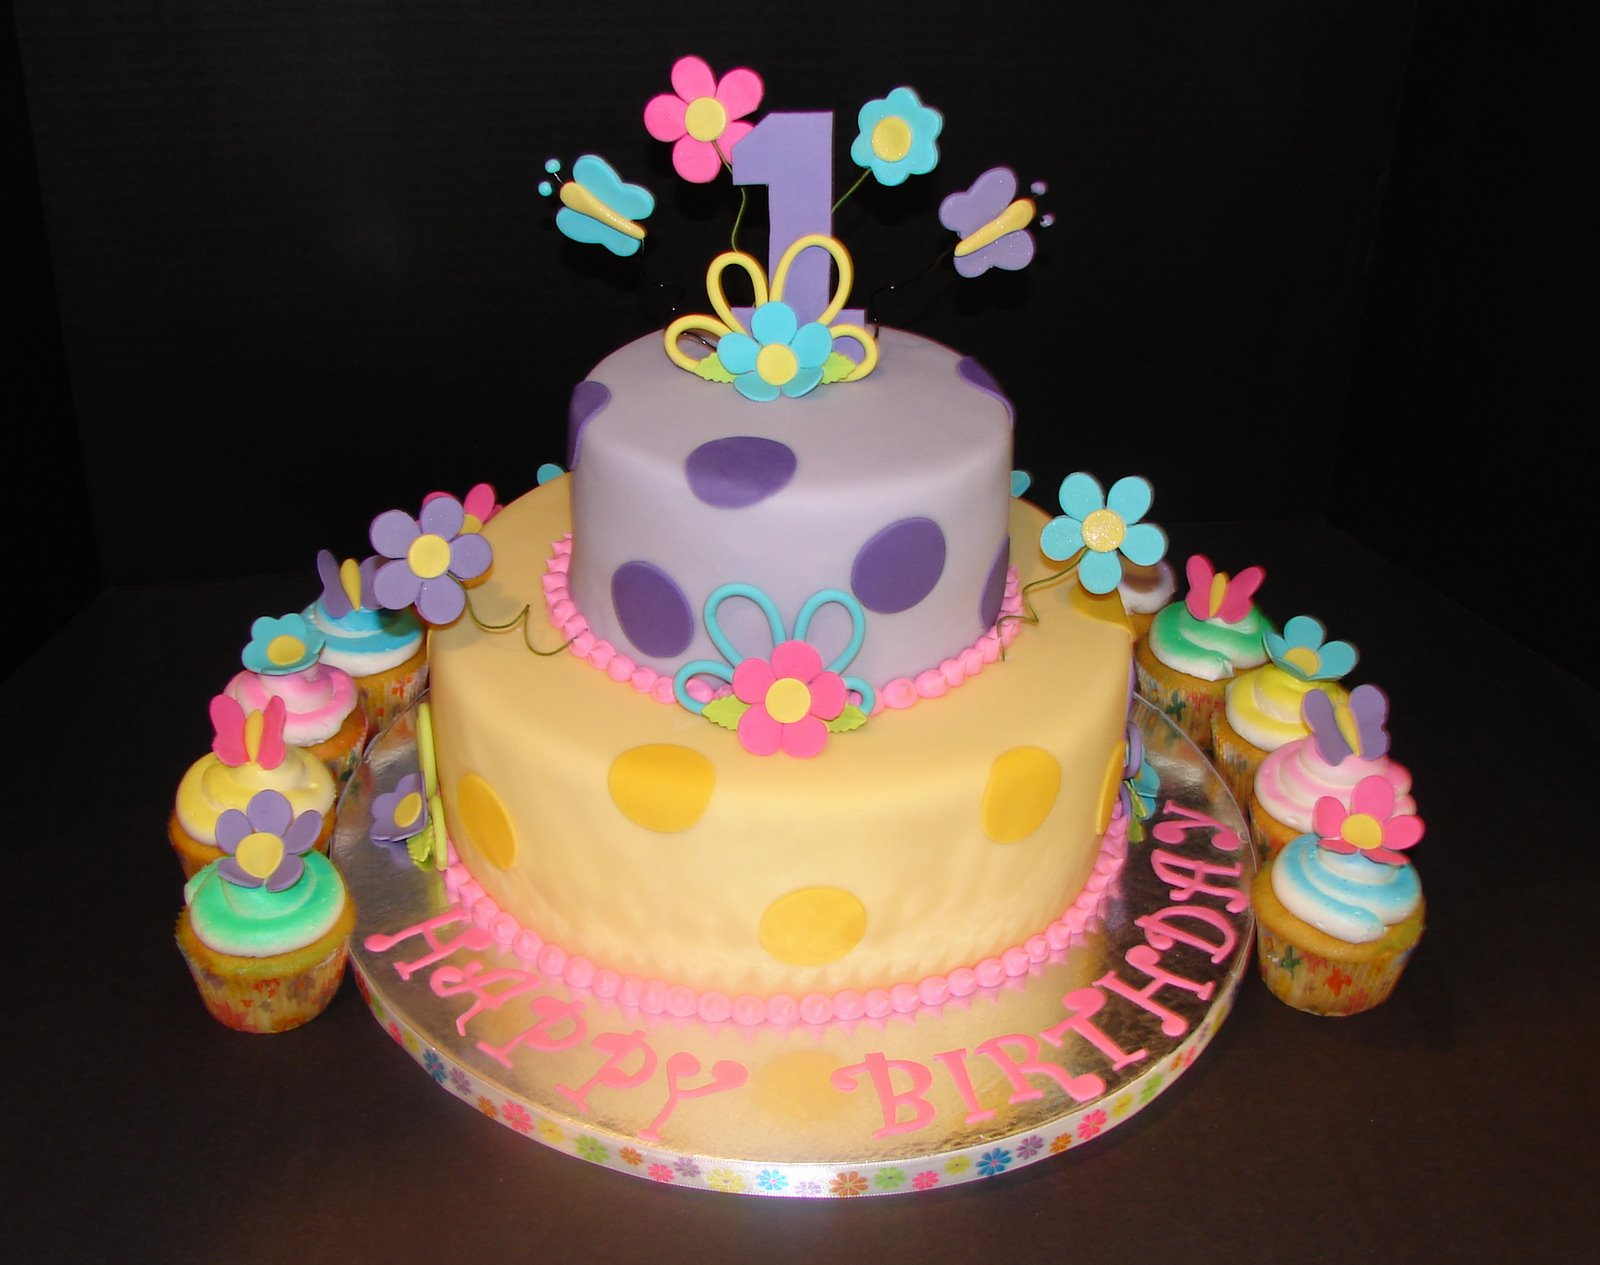 Birthday Cake Ideas And Pictures : teenage girl birthday cakes Cake Photos